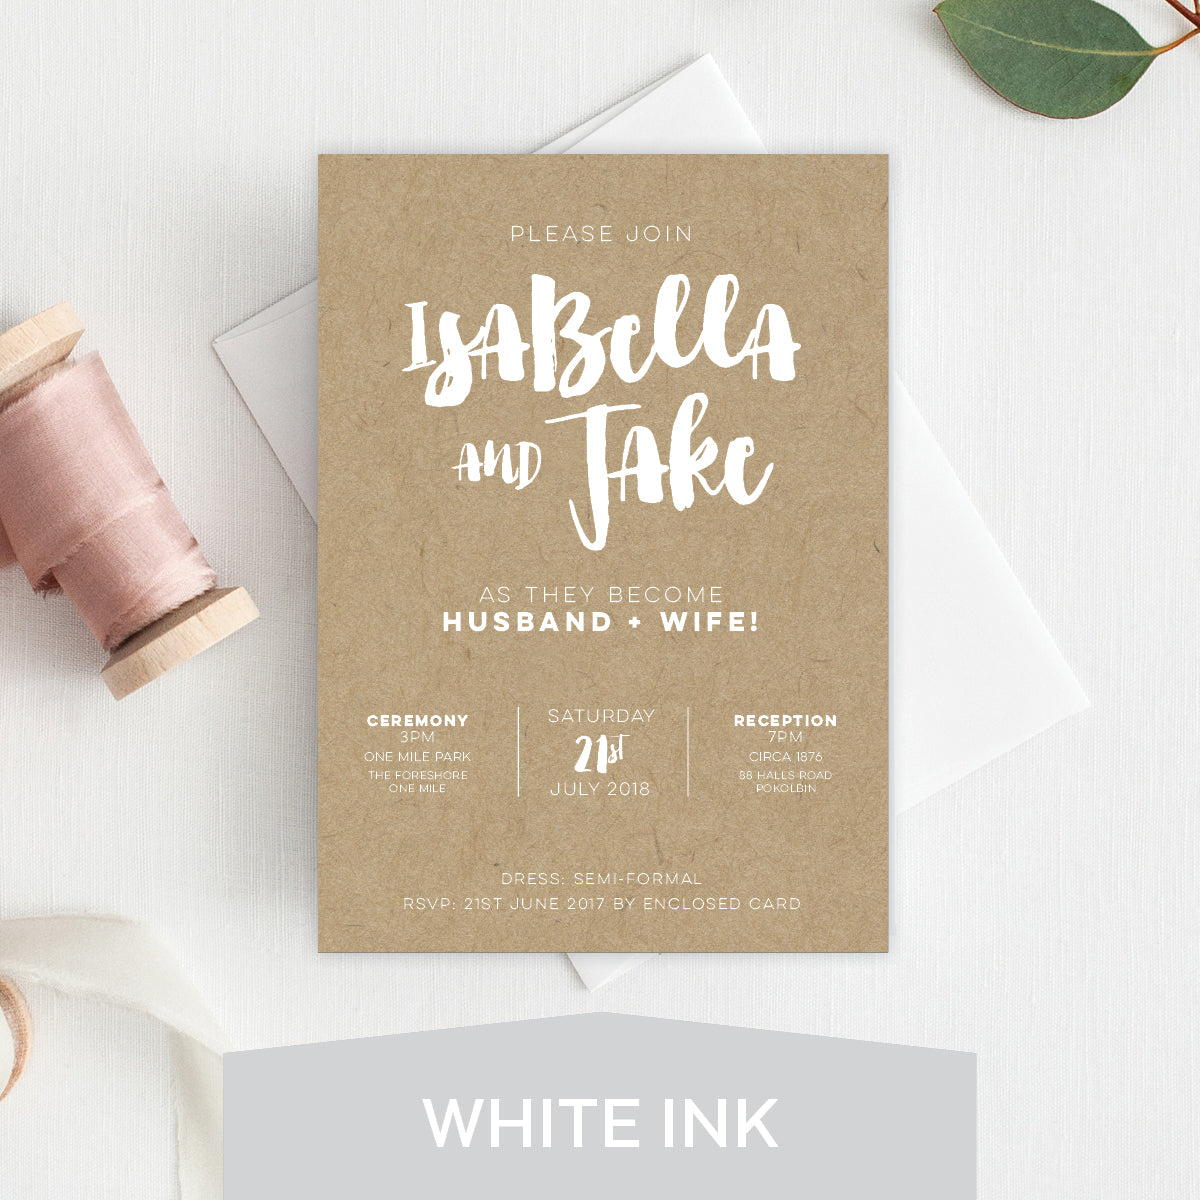 Love Struck White Ink Invitation